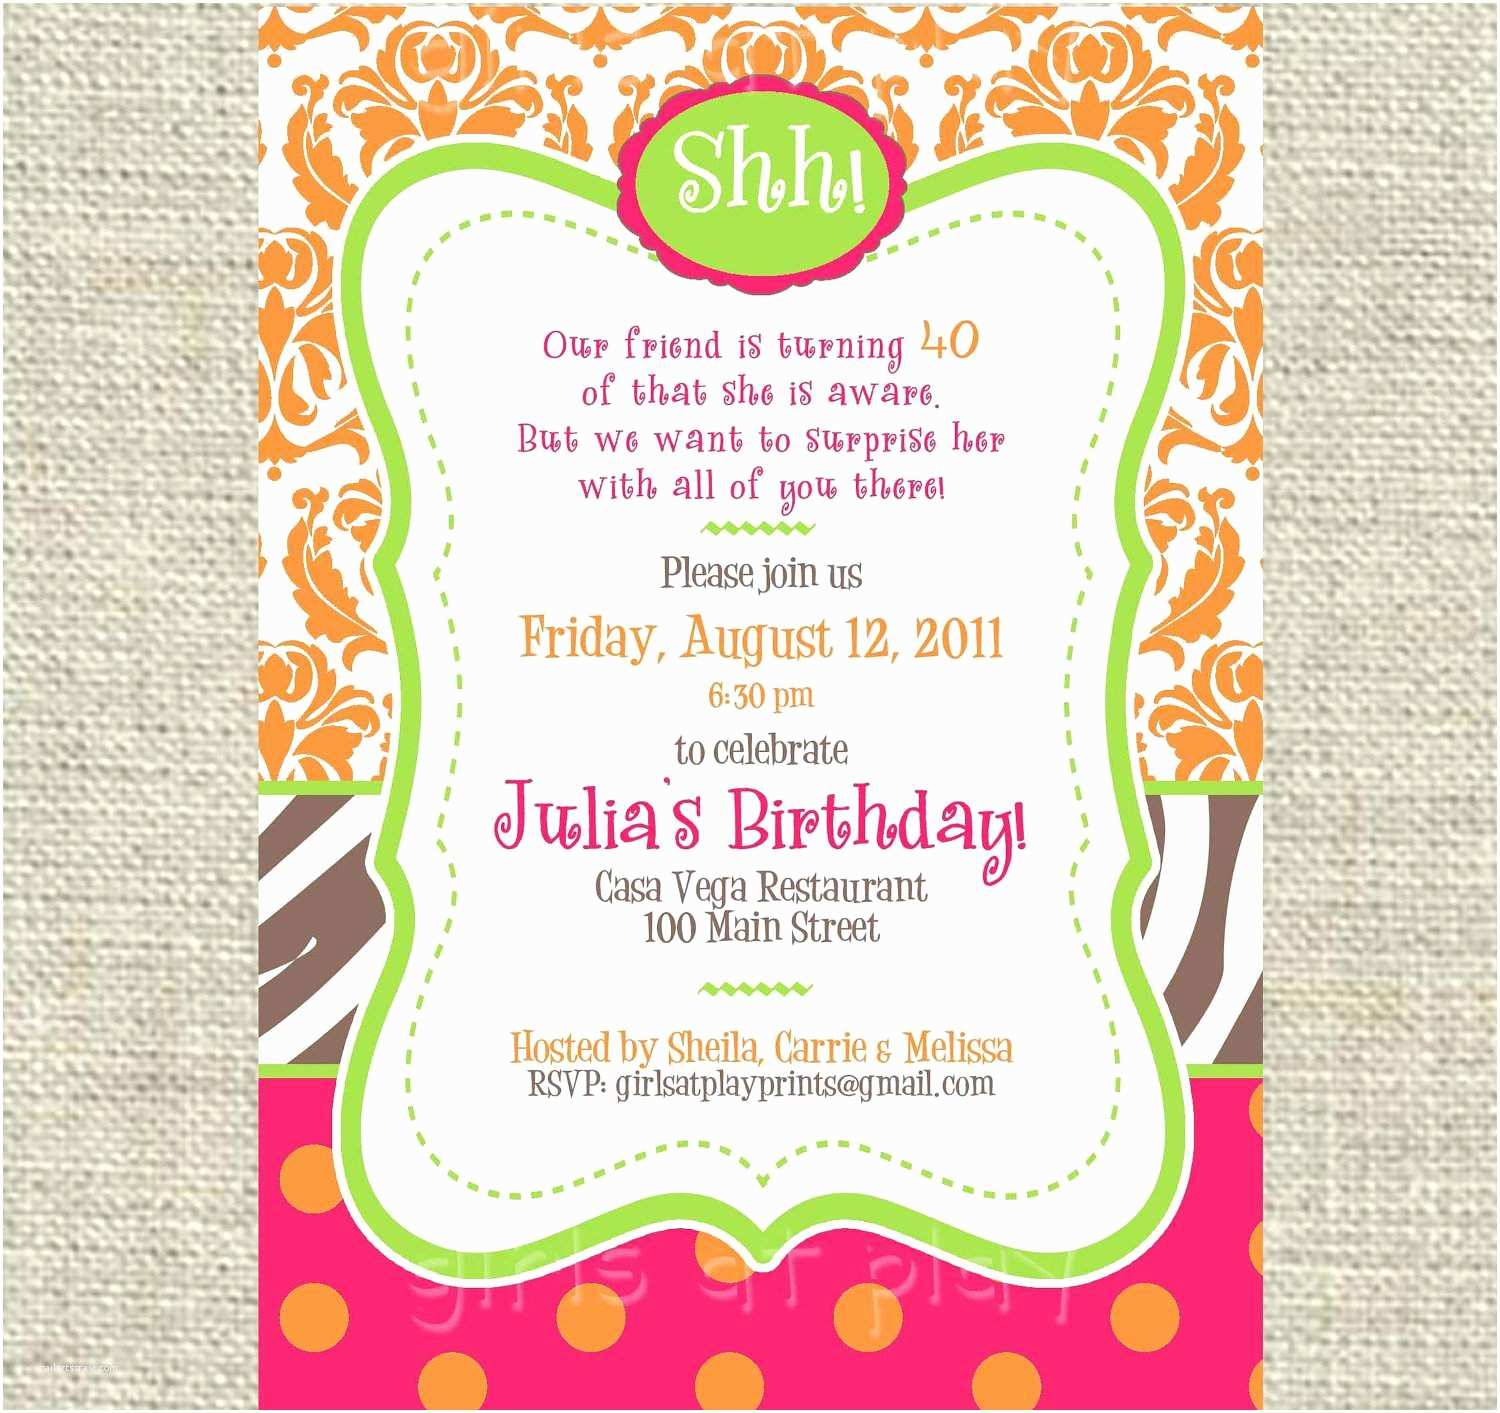 Birthday Invitation Text Kids Birthday Invitation Wording Ideas